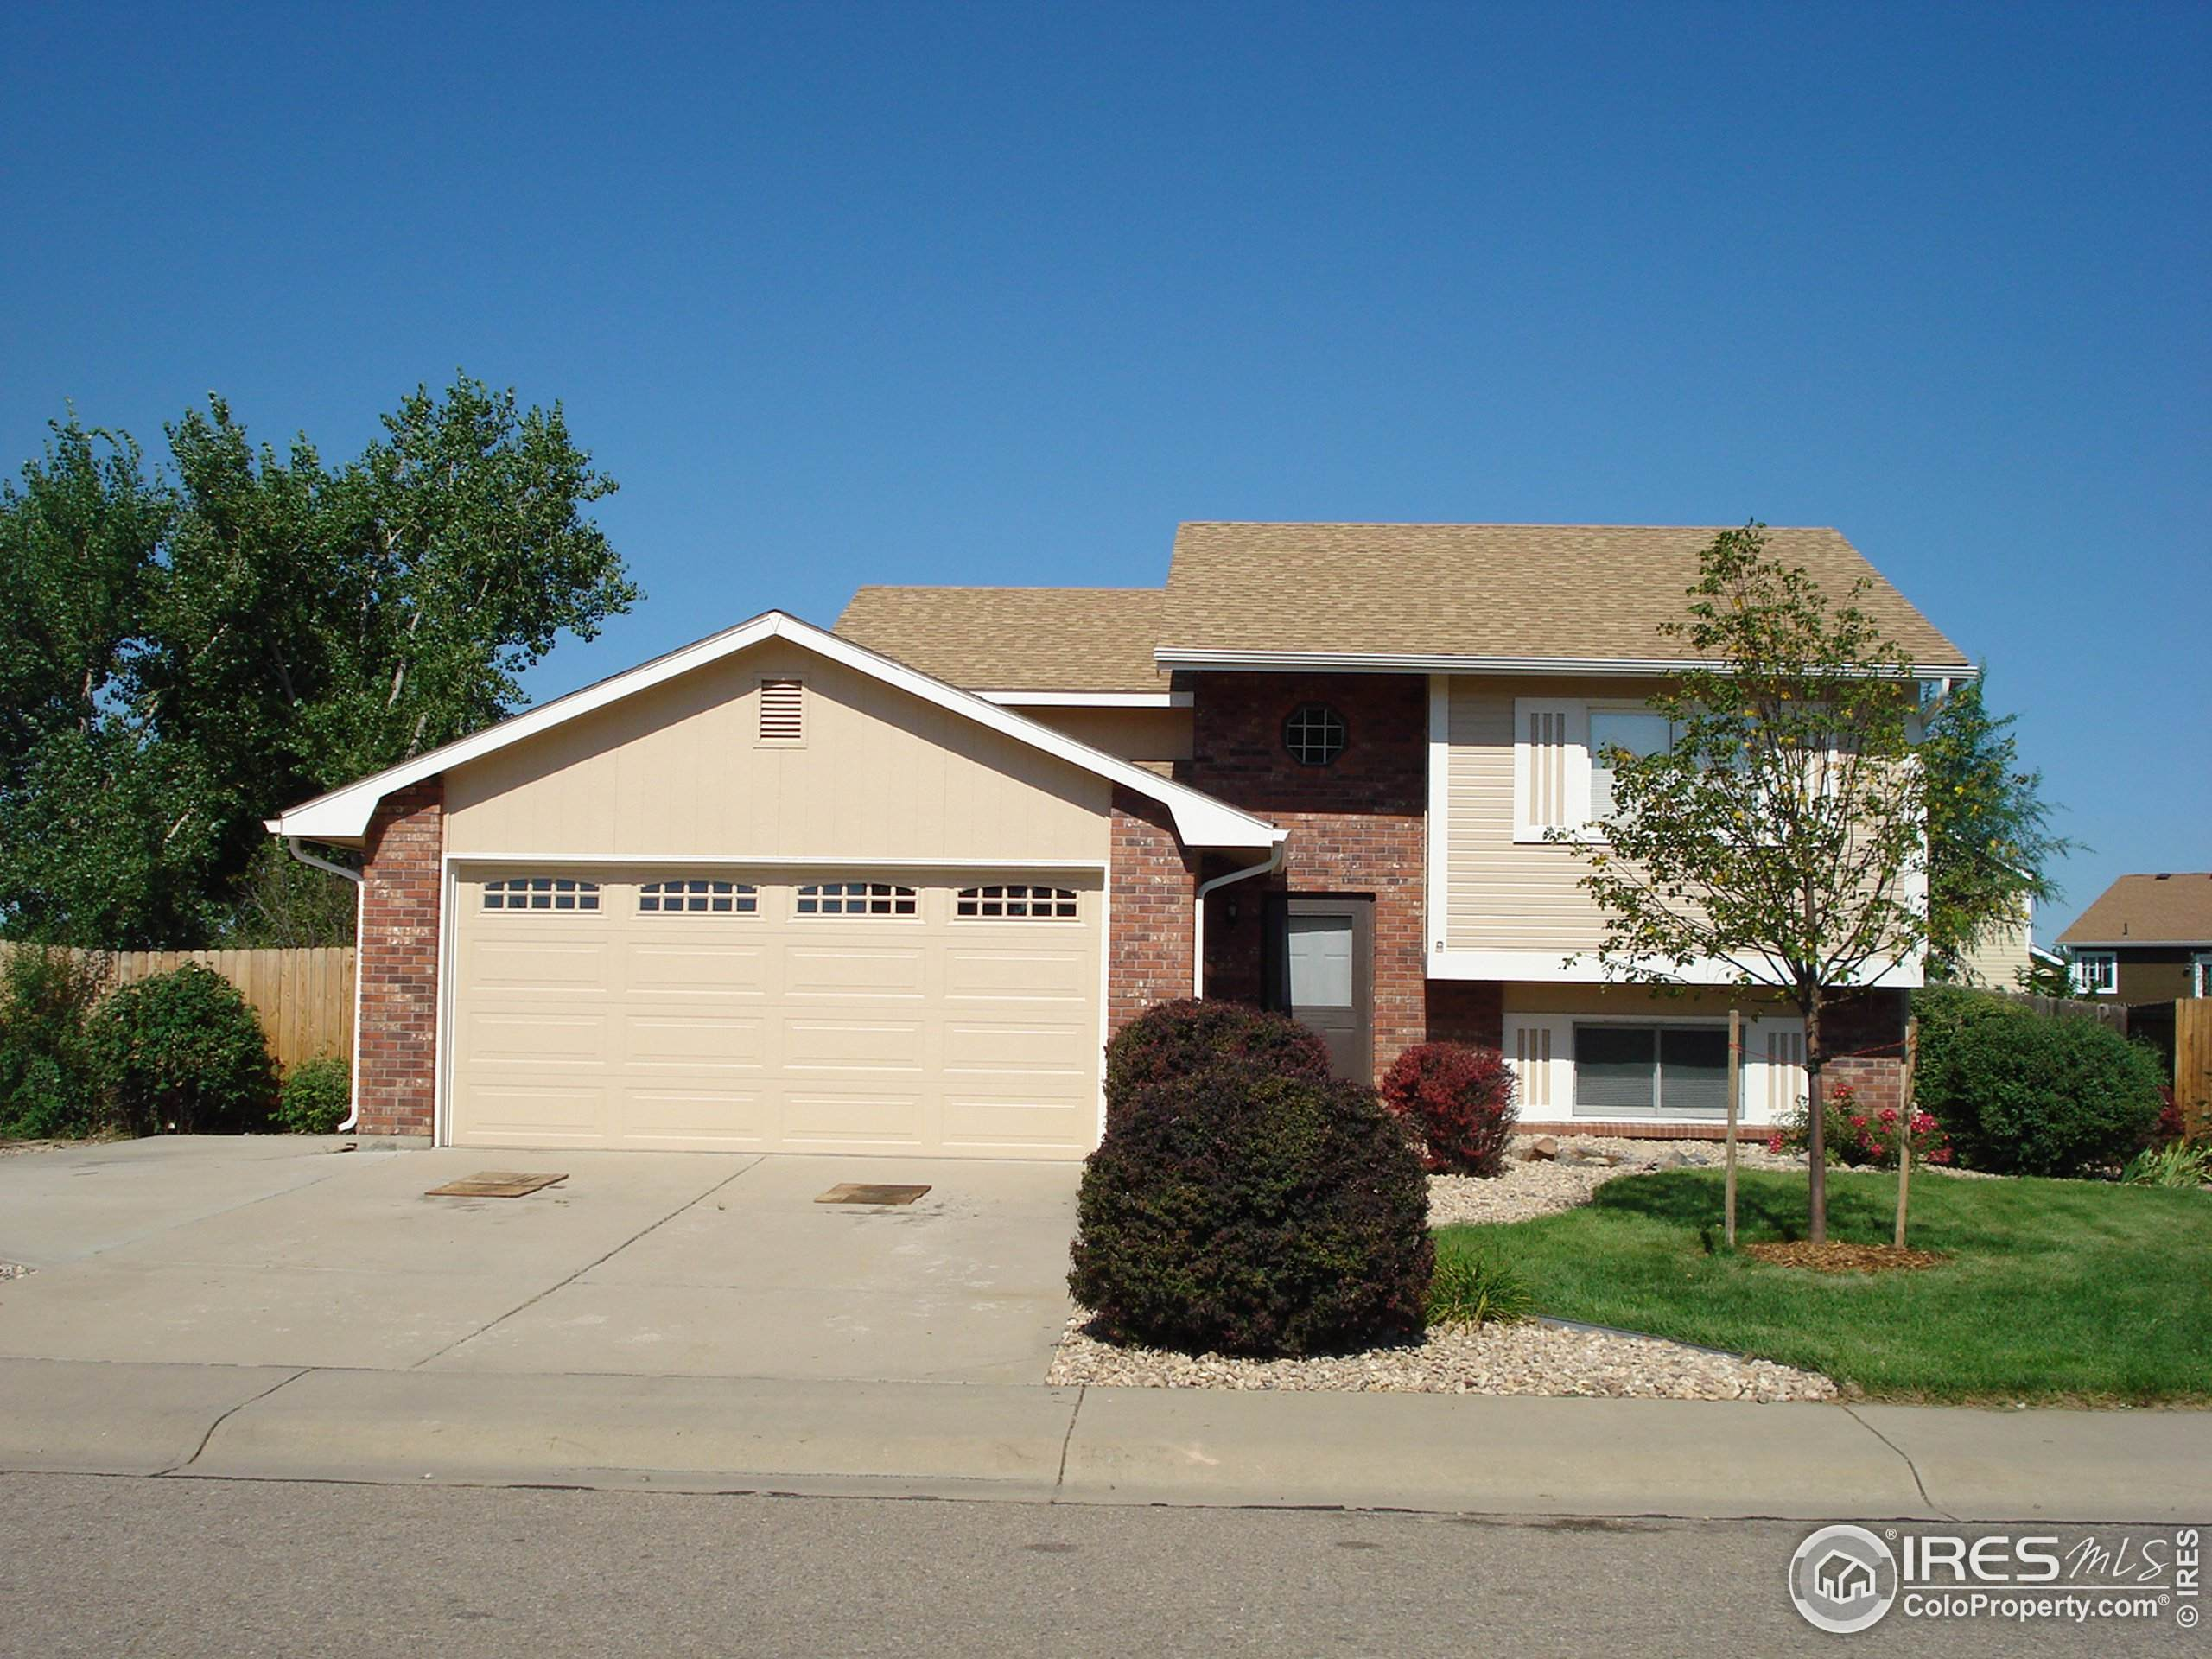 509 Briggs Pl, Superior, CO 80027 (MLS #937878) :: The Sam Biller Home Team